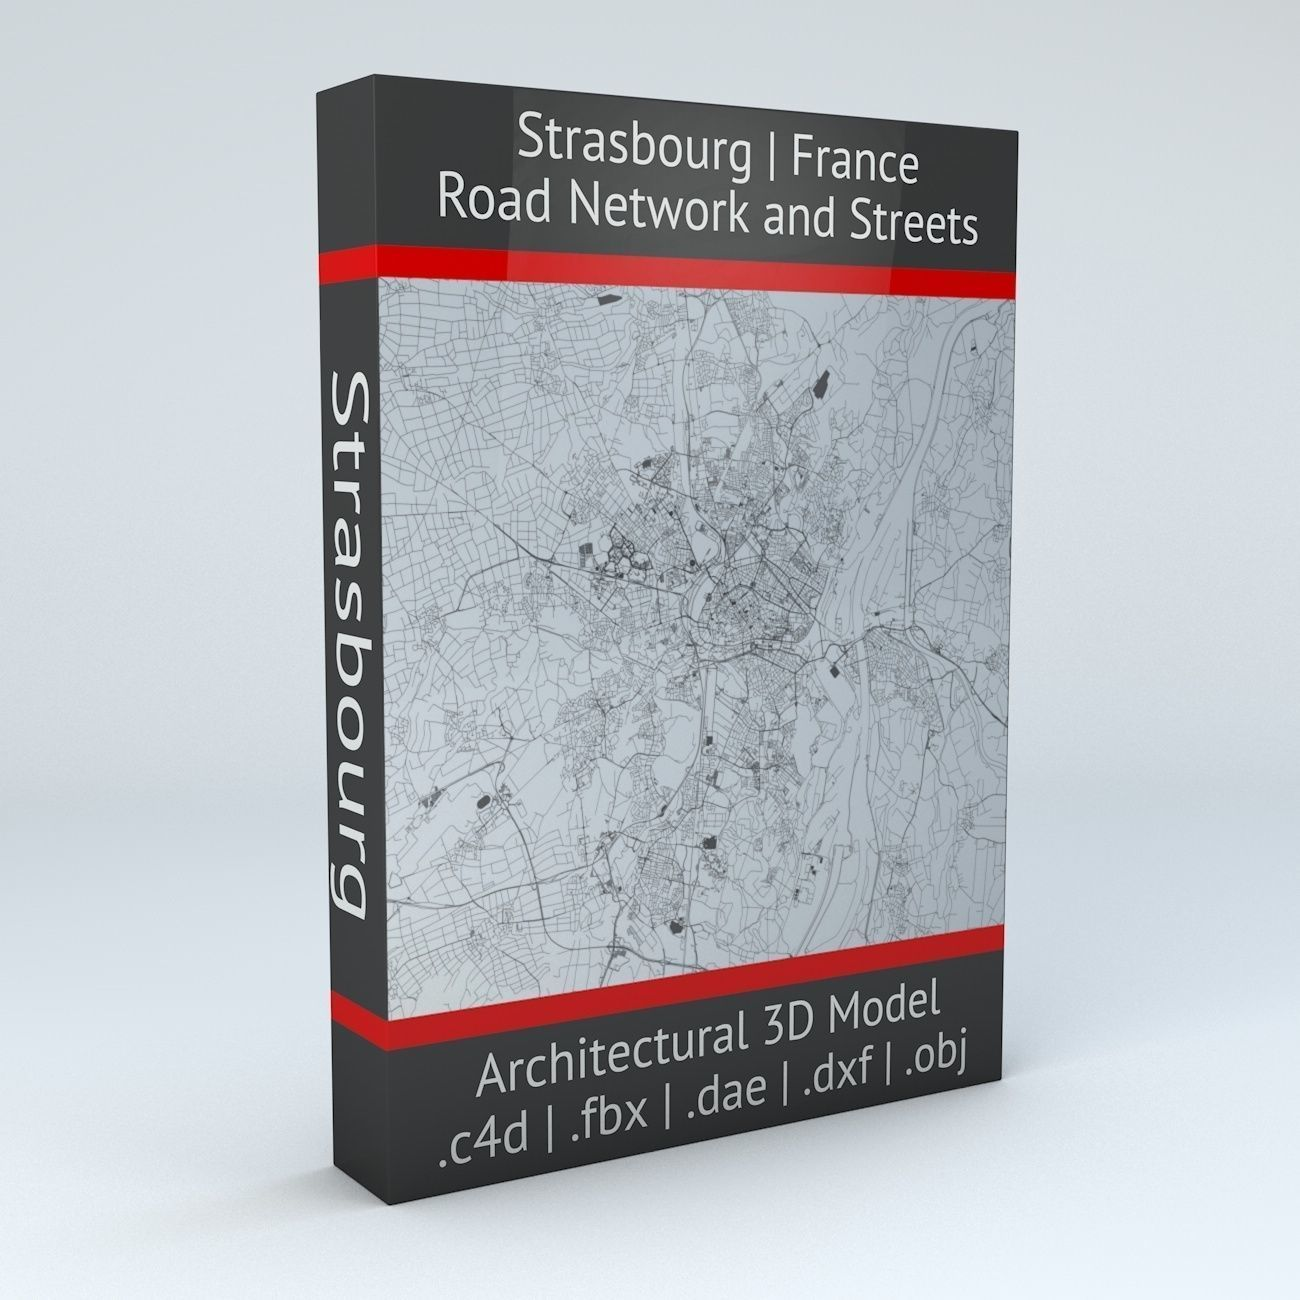 Strasbourg Road Network and Streets